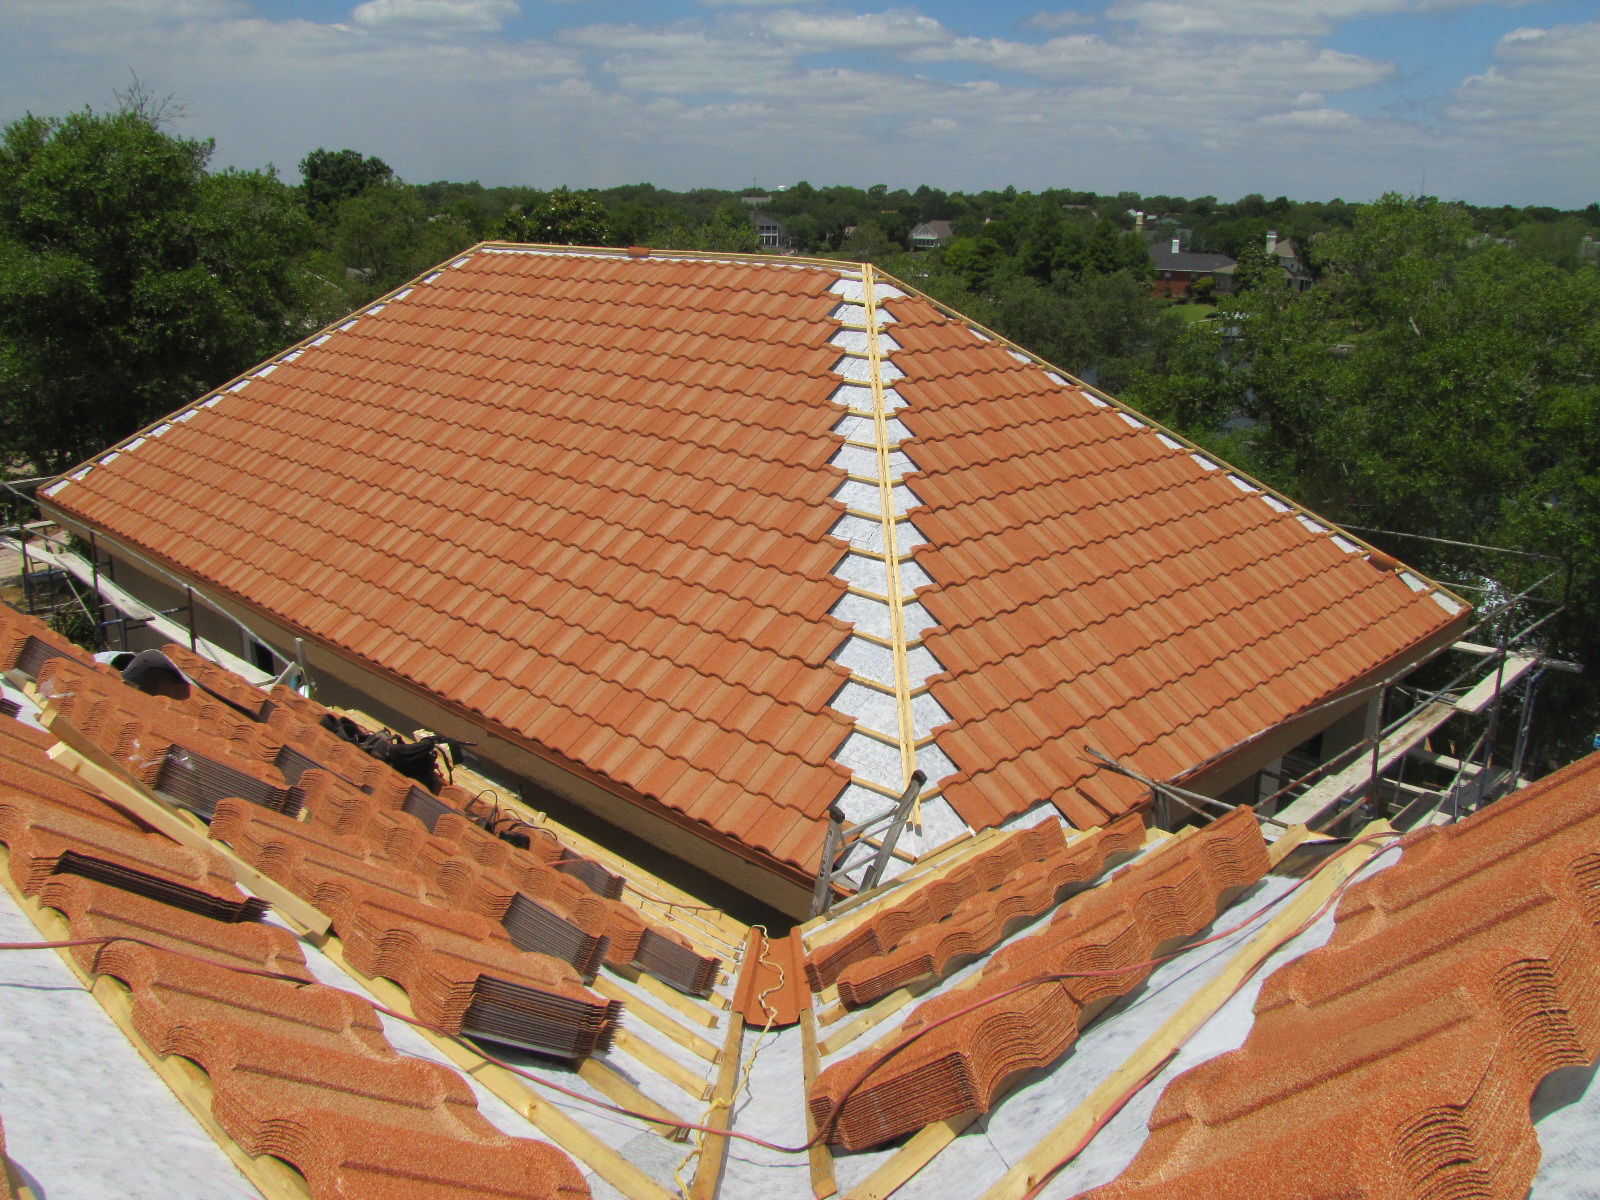 Premium HT Tile & Metal is designed as a whole roof covering. The product is a vapor barrier so ensure proper roof ventilation.